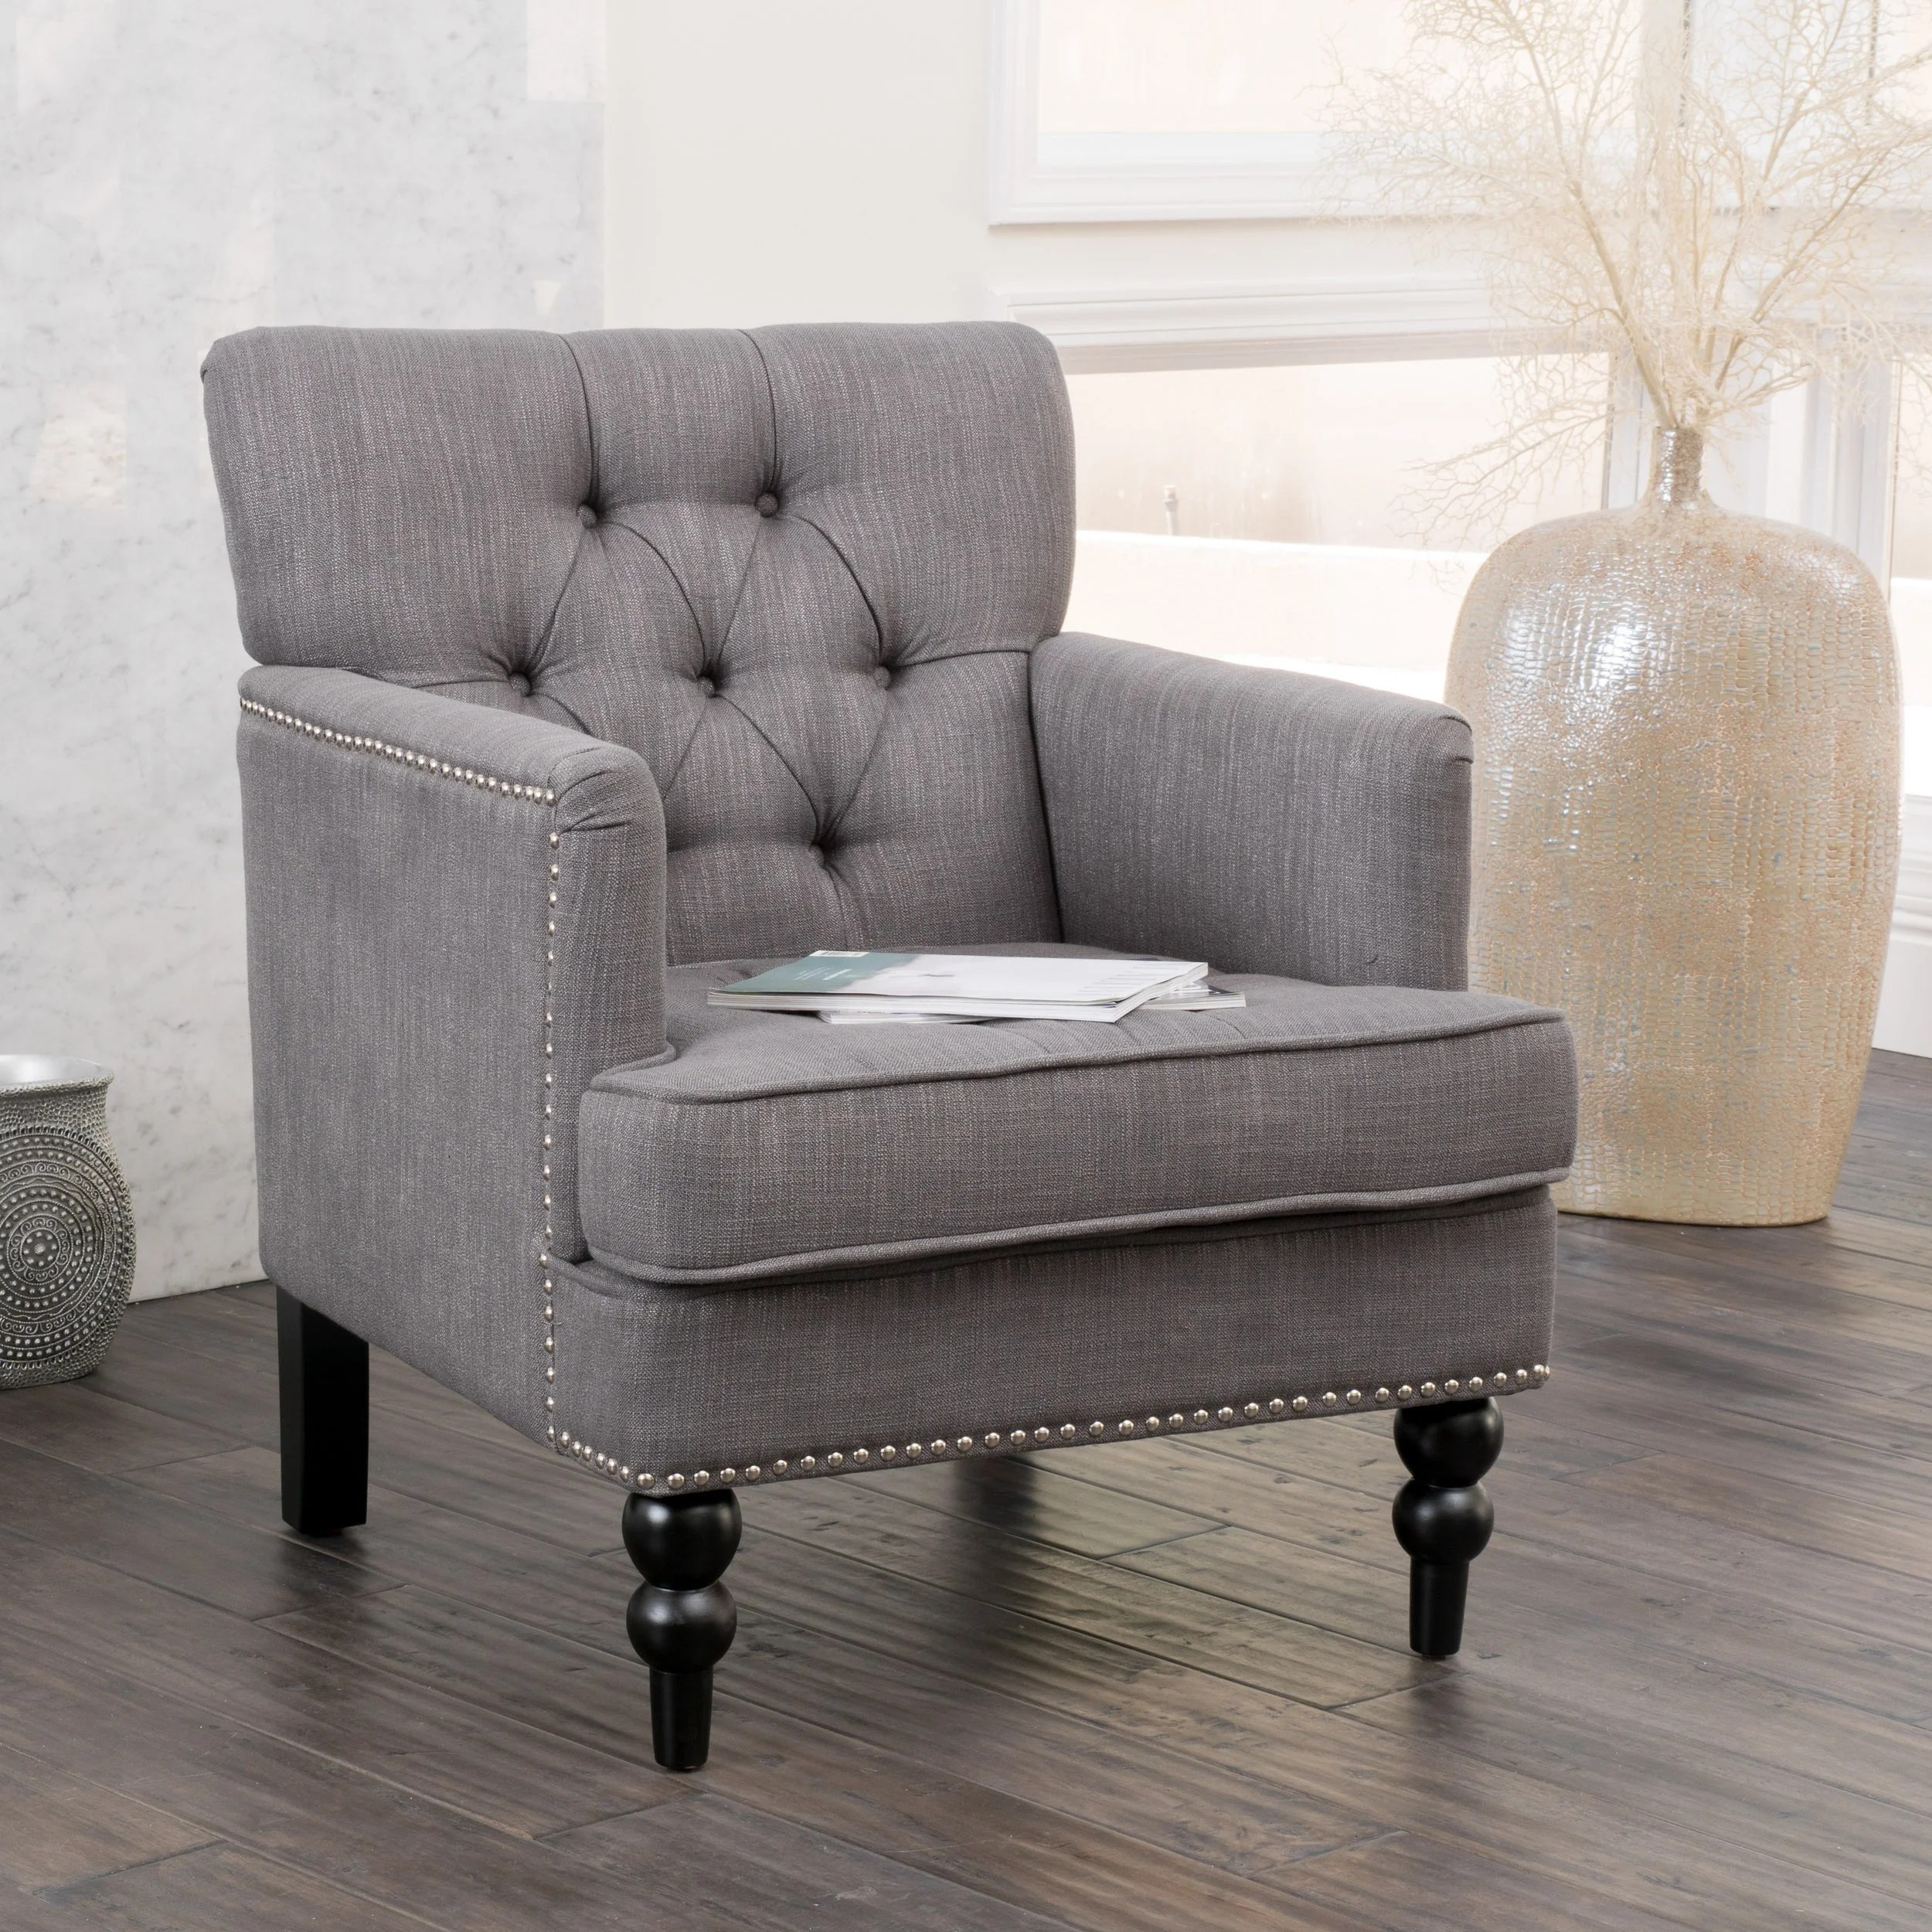 overstock com chairs walmart folding christopher knight home malone charcoal grey club chair